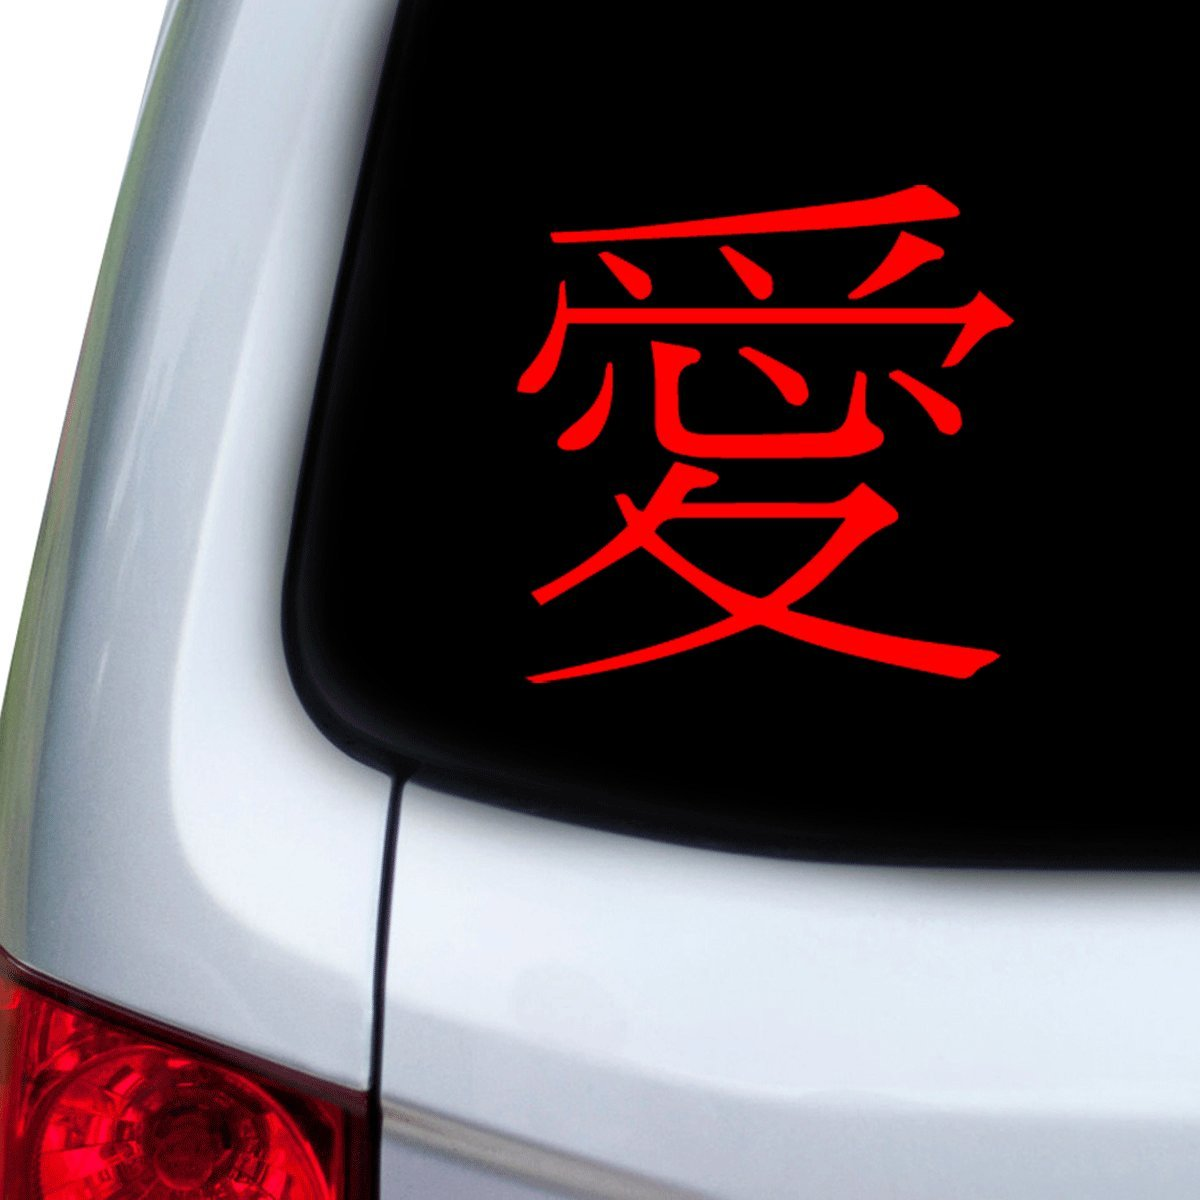 Doors StickAny Car and Auto Decal Series Chinese Love Sticker for Windows Red Hoods